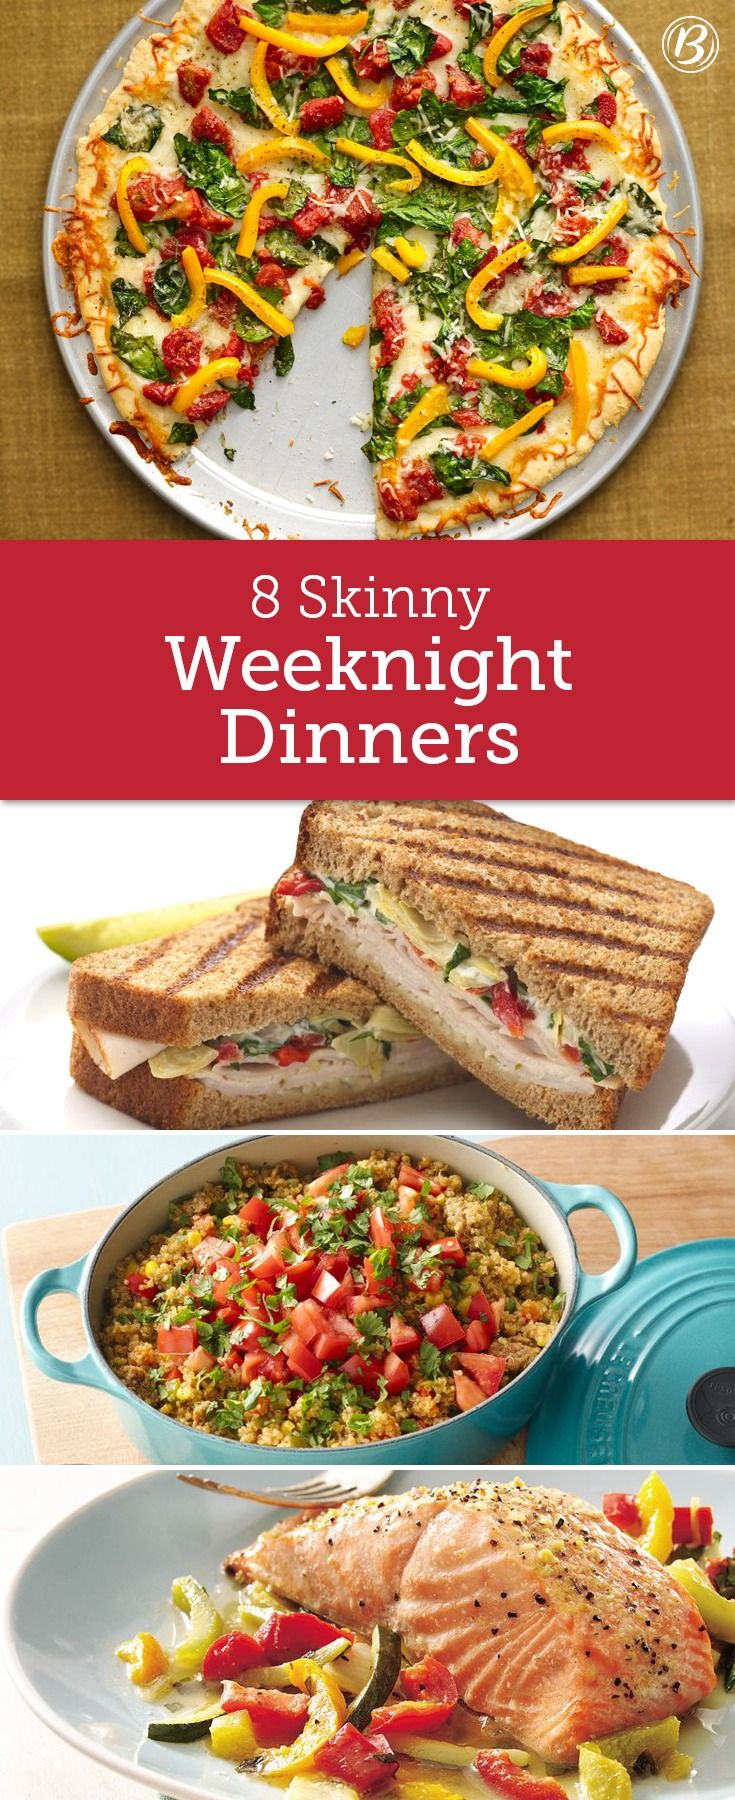 Coming in at fewer than 300 calories each, these quick and easy meals fill you up without weighing you down. Stuffed chicken breasts, light casseroles and cozy soups make delicious weeknight dinners that you won't regret.